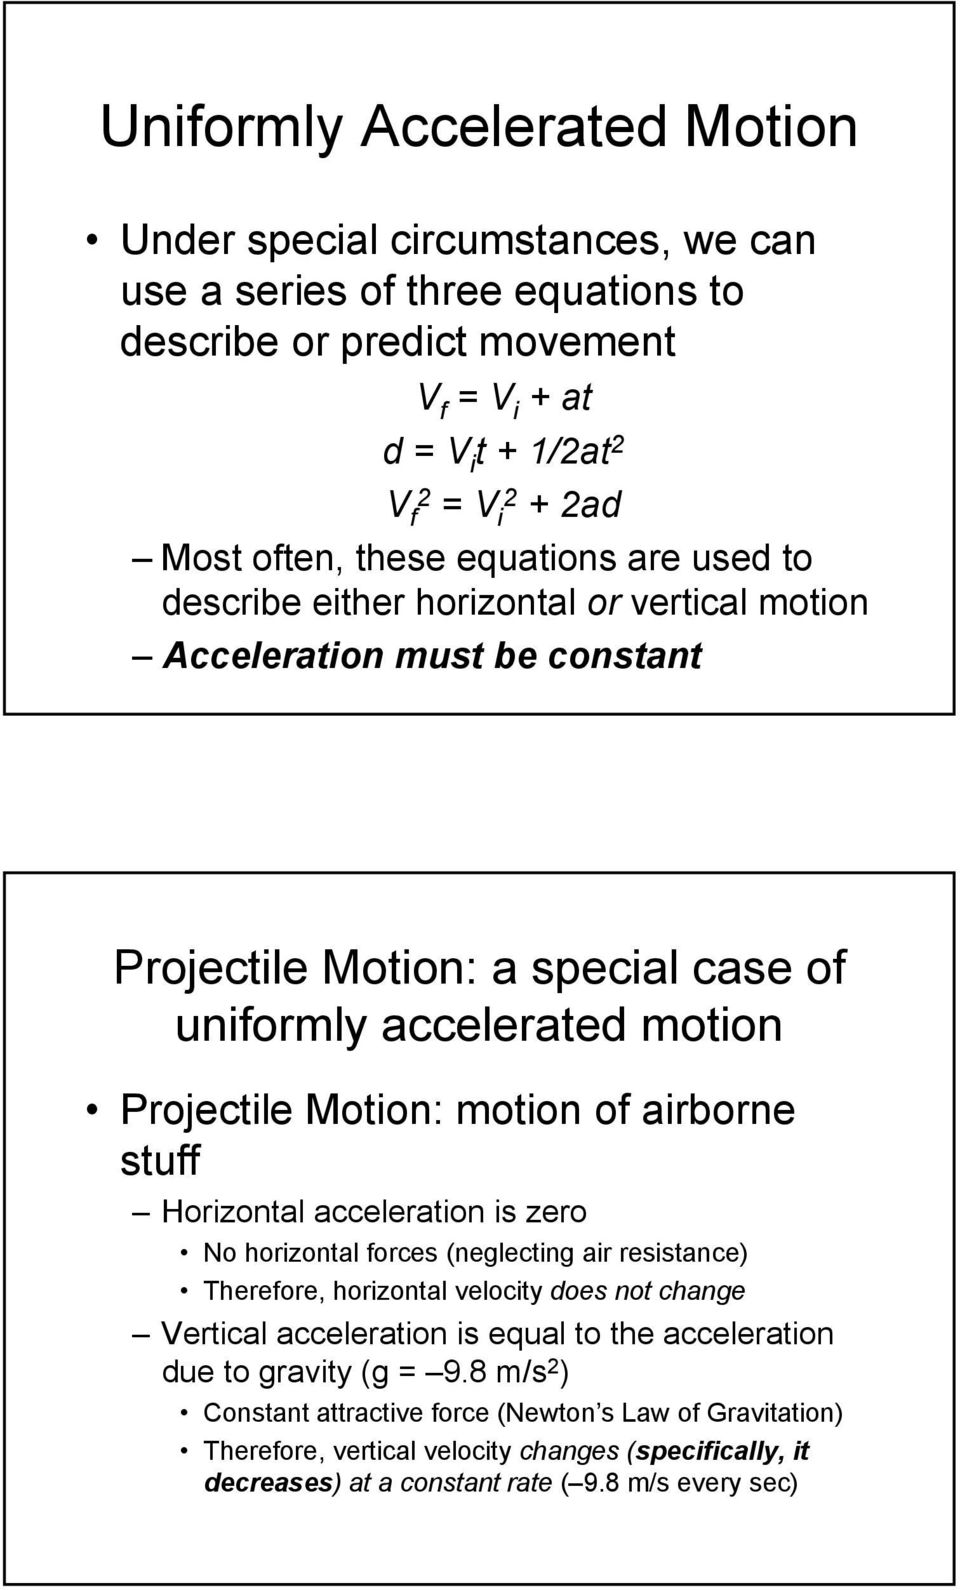 motion of airborne stuff Horizontal acceleration is zero No horizontal forces (neglecting air resistance) Therefore, horizontal velocity does not change Vertical acceleration is equal to the